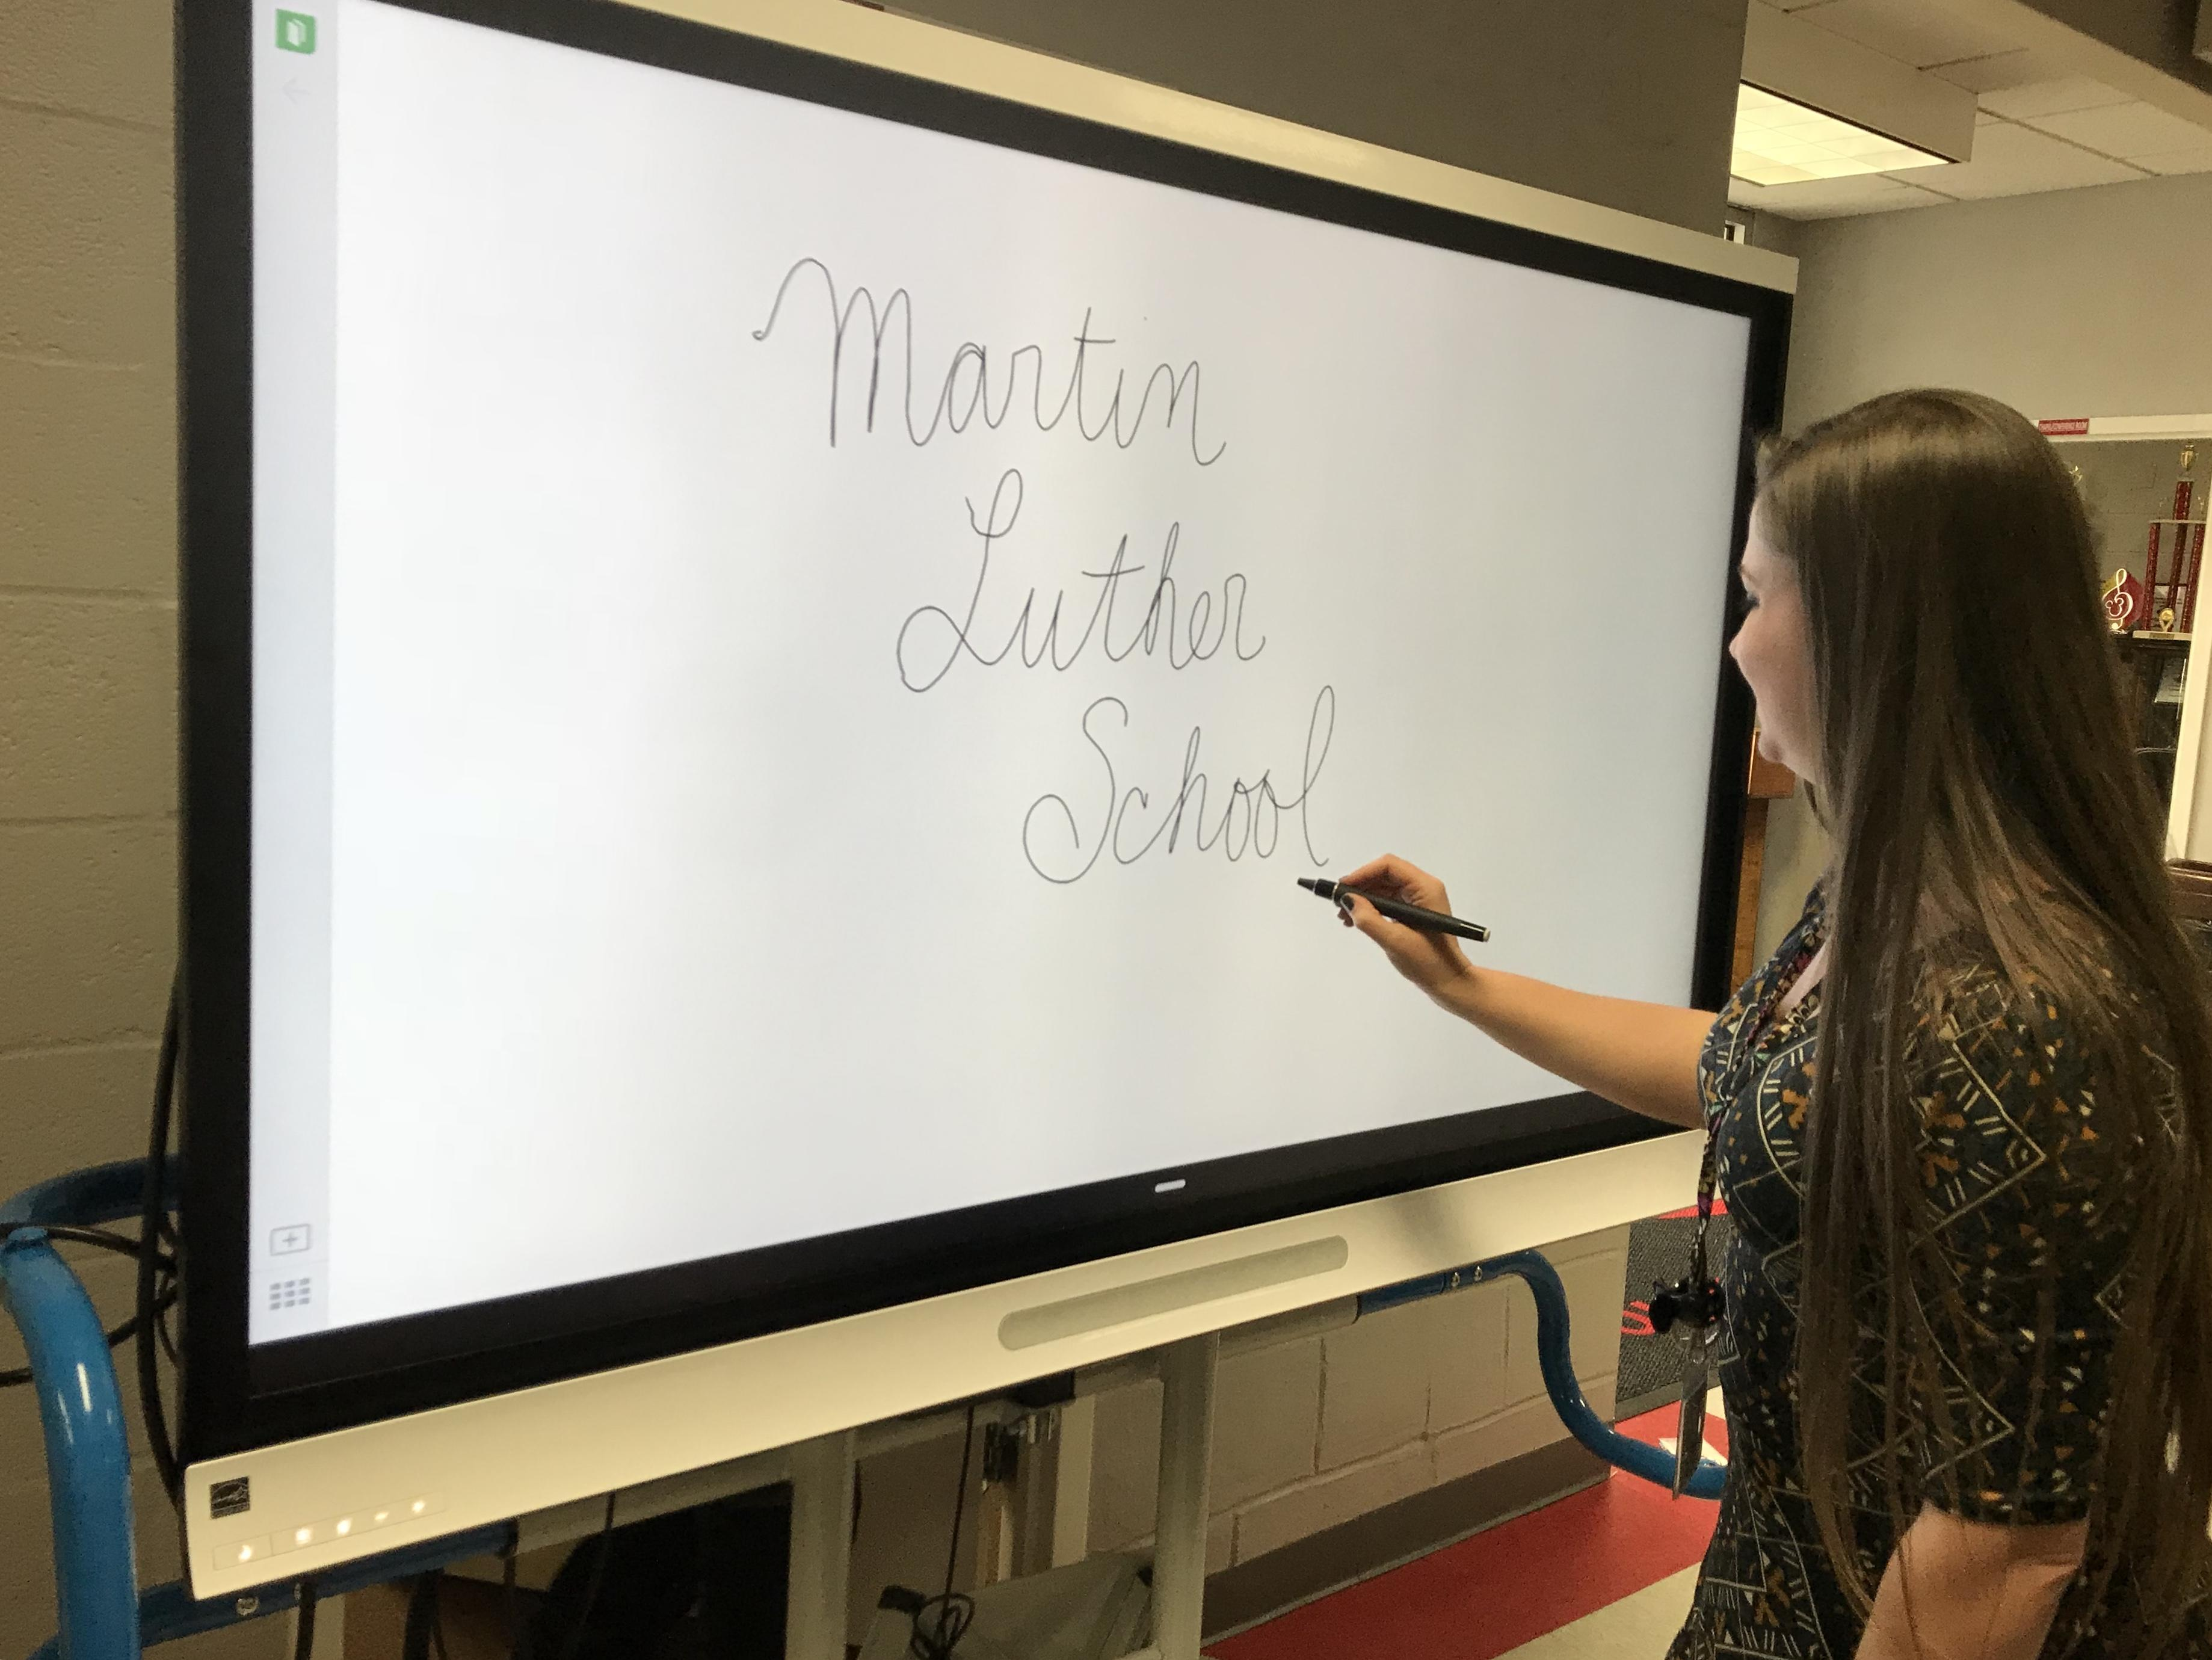 New technology at Martin Luther School, such as whiteboards.